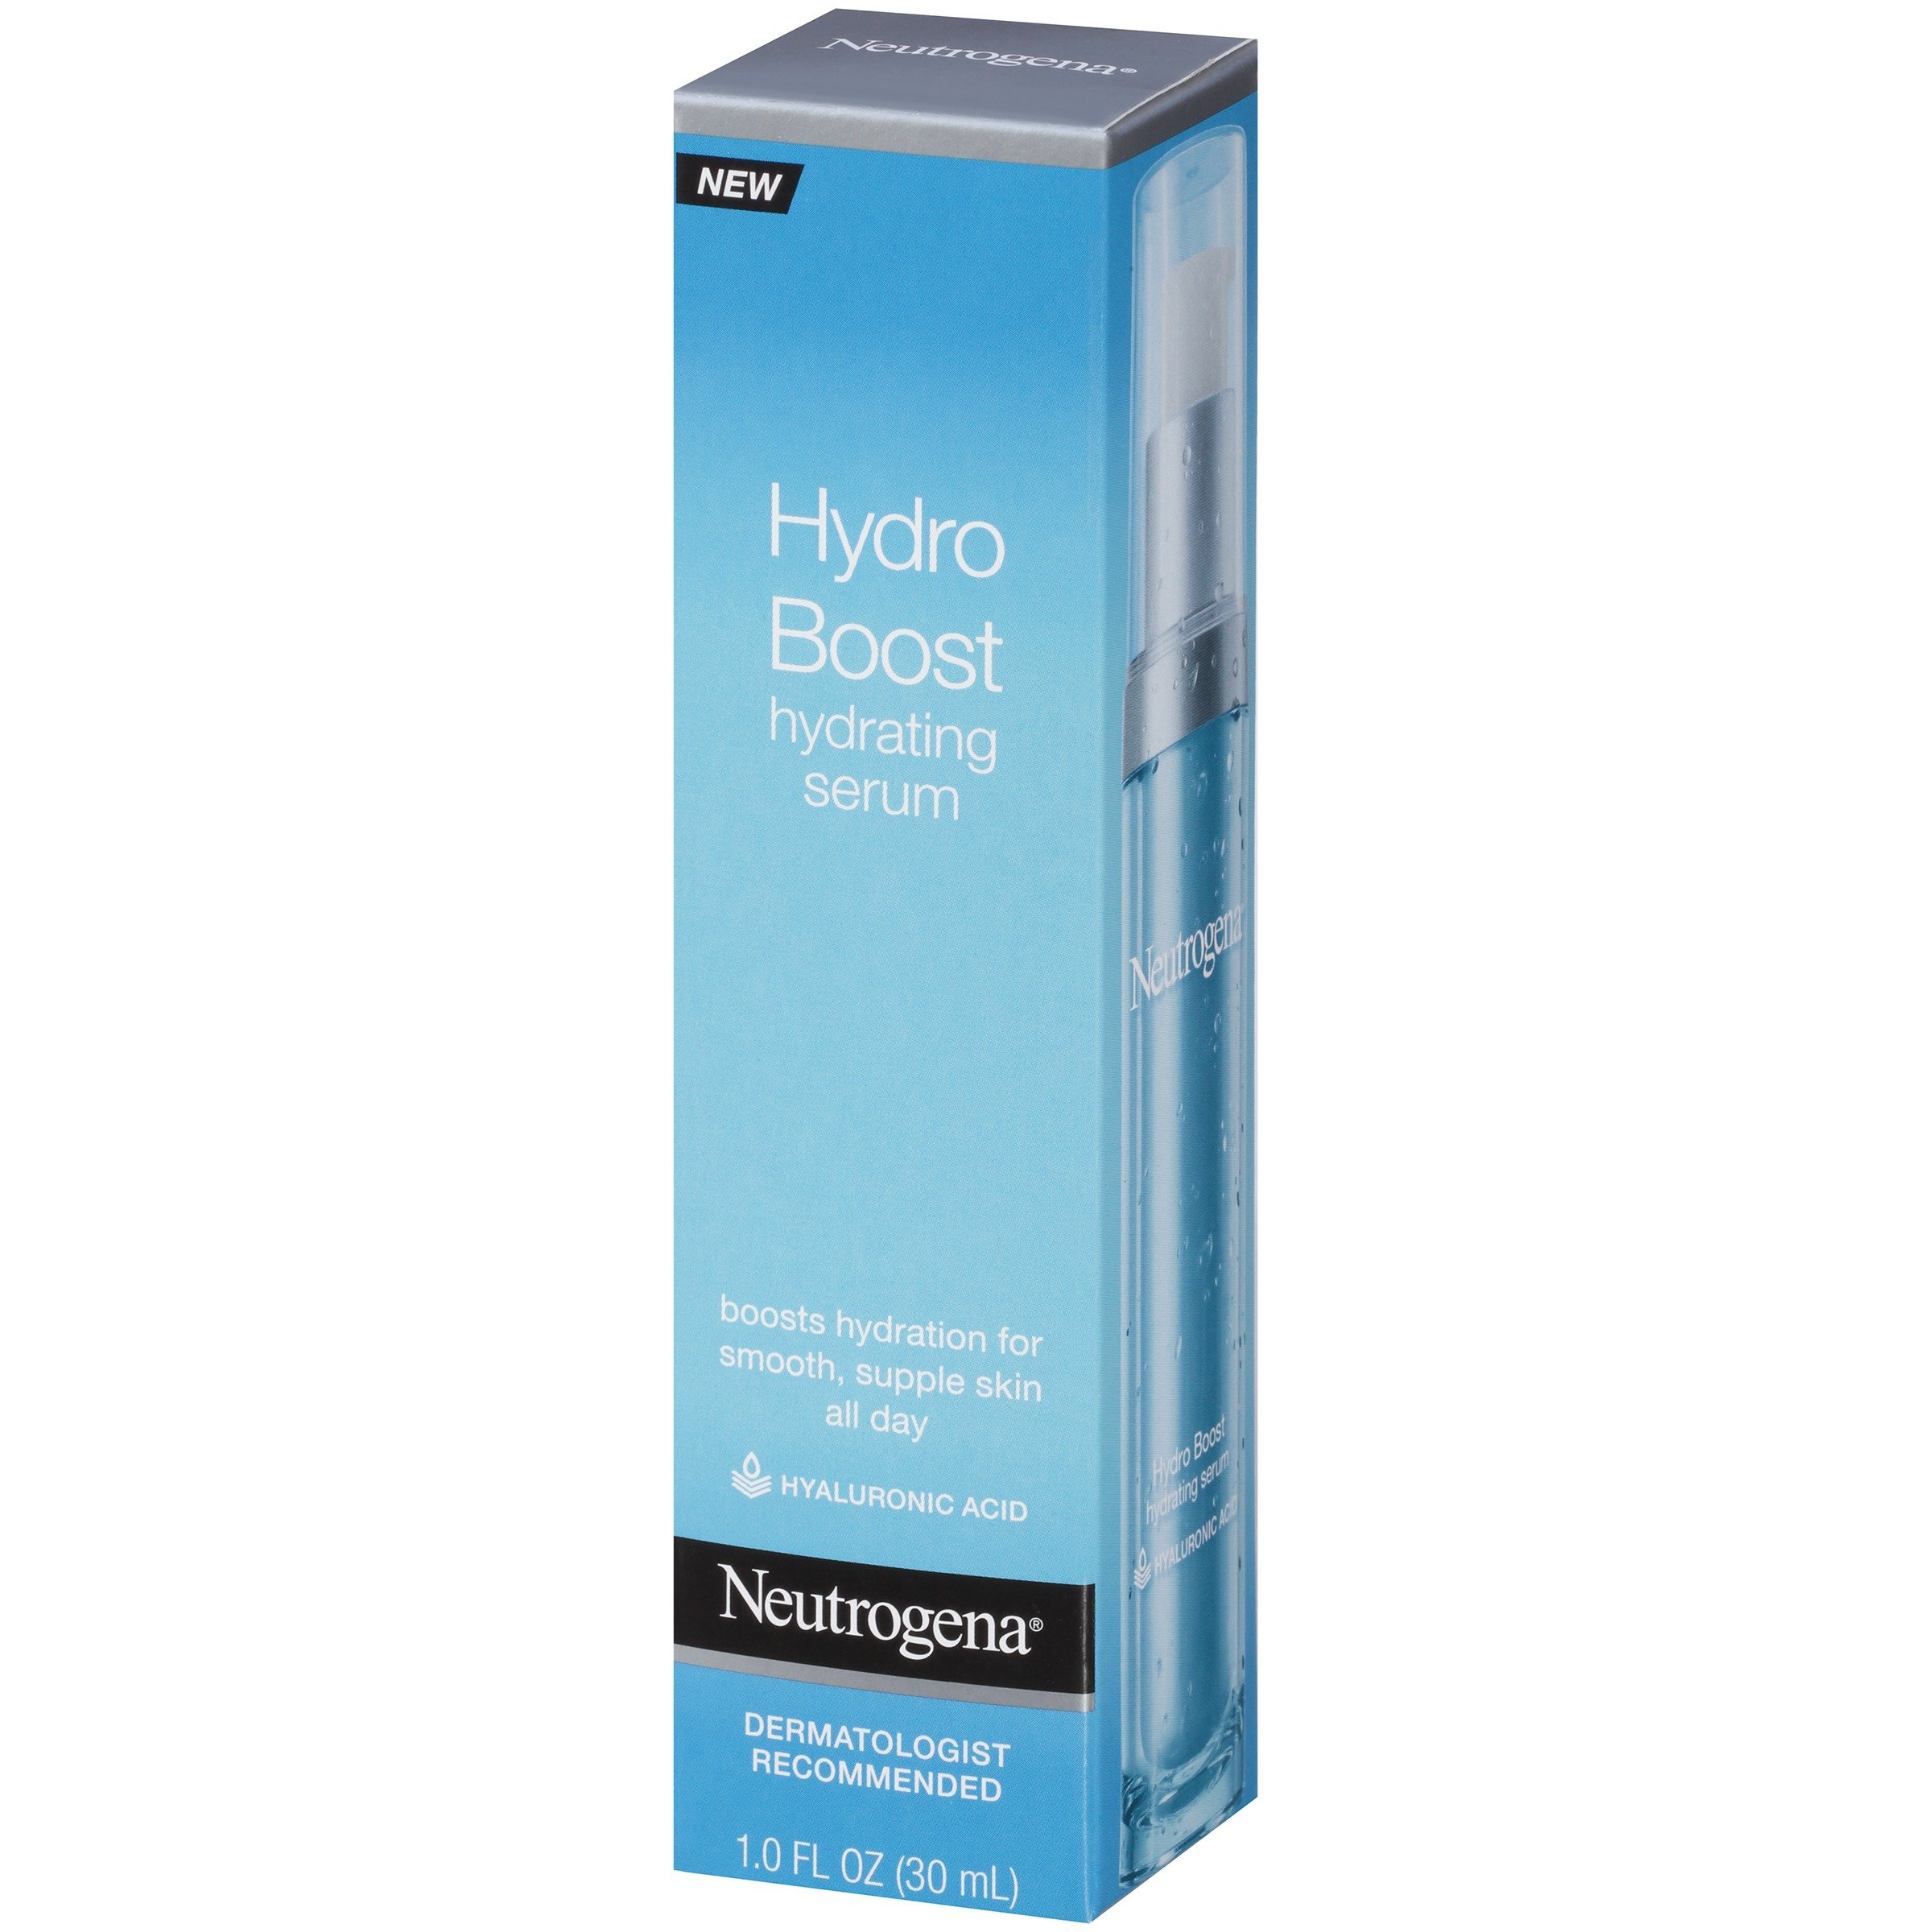 Neutrogena Hydro Boost Hydrating Hyaluronic Acid Serum, Oil-Free and Non-Comedogenic Formula for Glowing Complexion, 1 fl. oz by Neutrogena (Image #3)